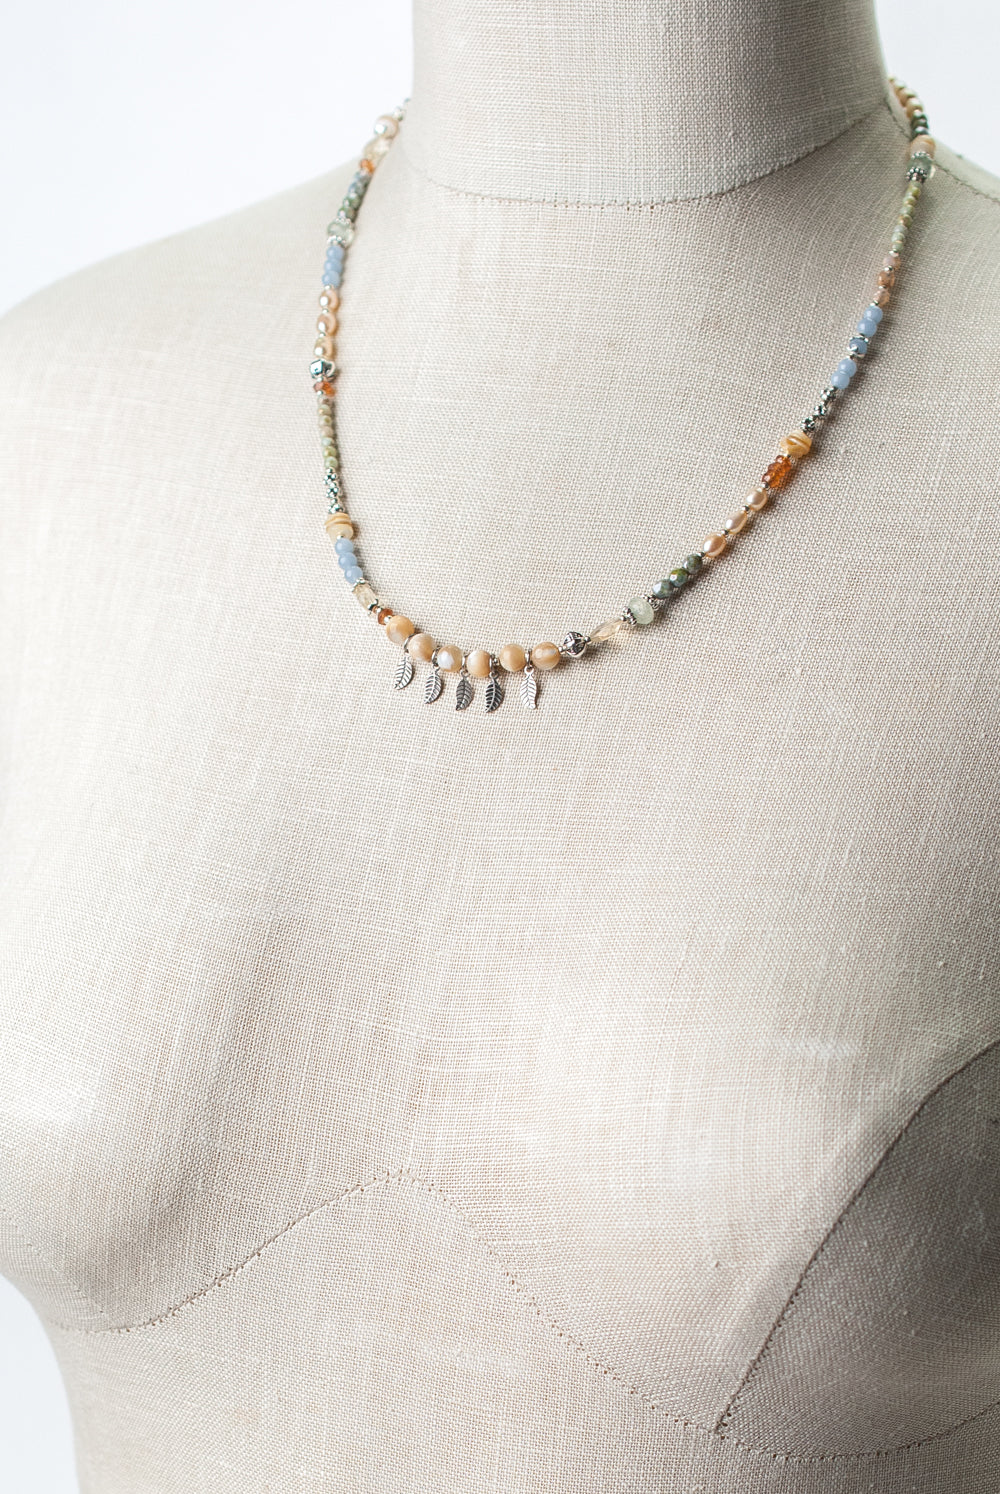 "Refresh 19.75-21.75"" Czech Glass, Pearl, Heishe Shell Collage Necklace"